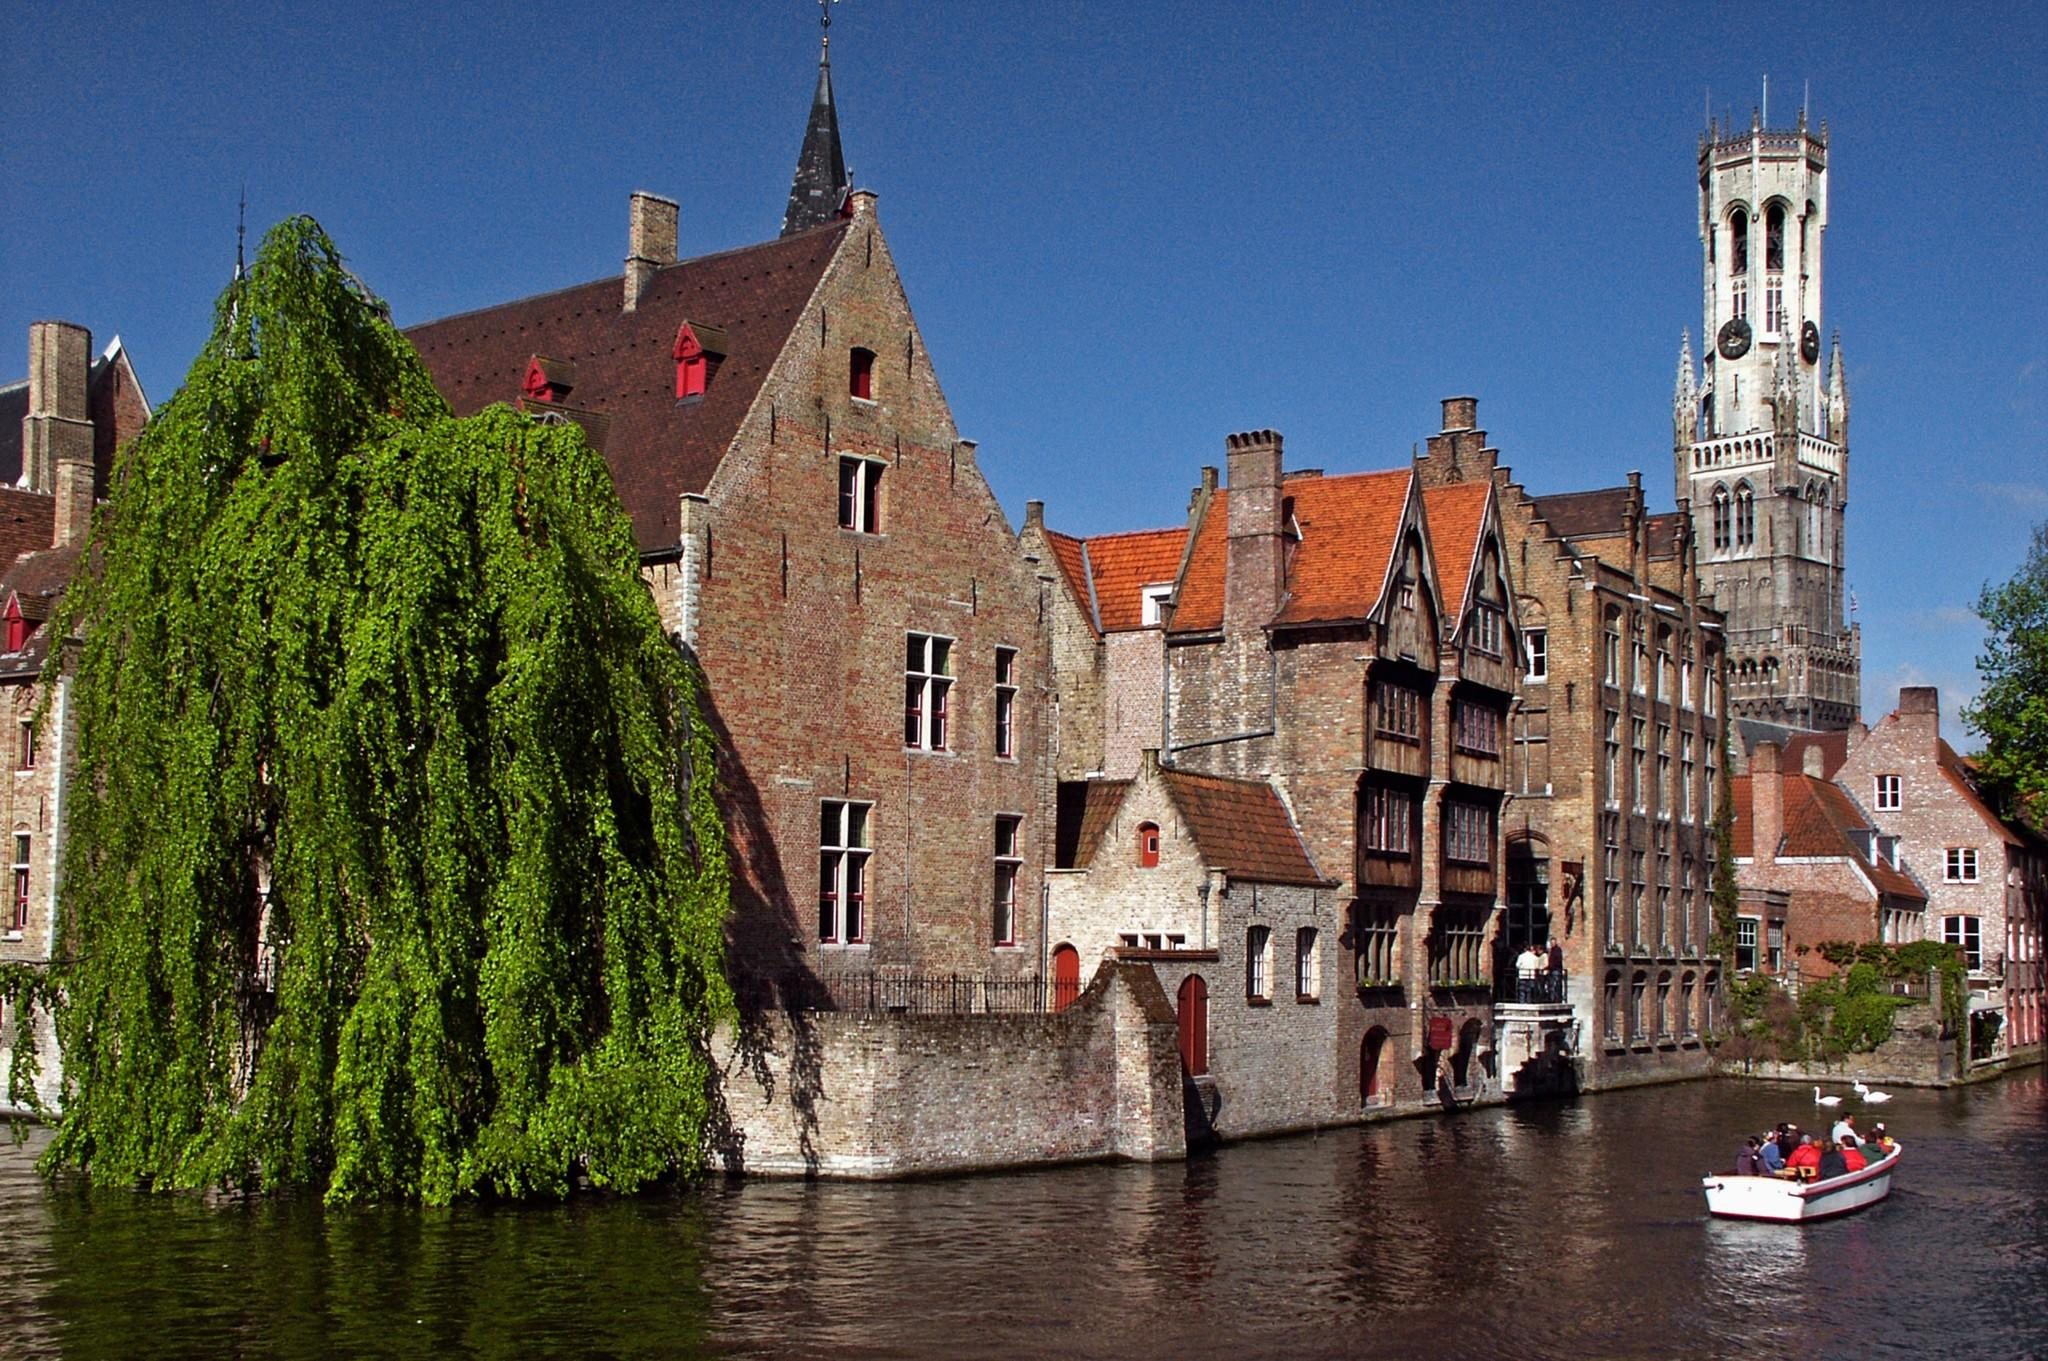 Europe motor coach tour of belgium luxembourg and the netherlands tall gabled houses line the canals of bruges belgium and give the town a publicscrutiny Image collections